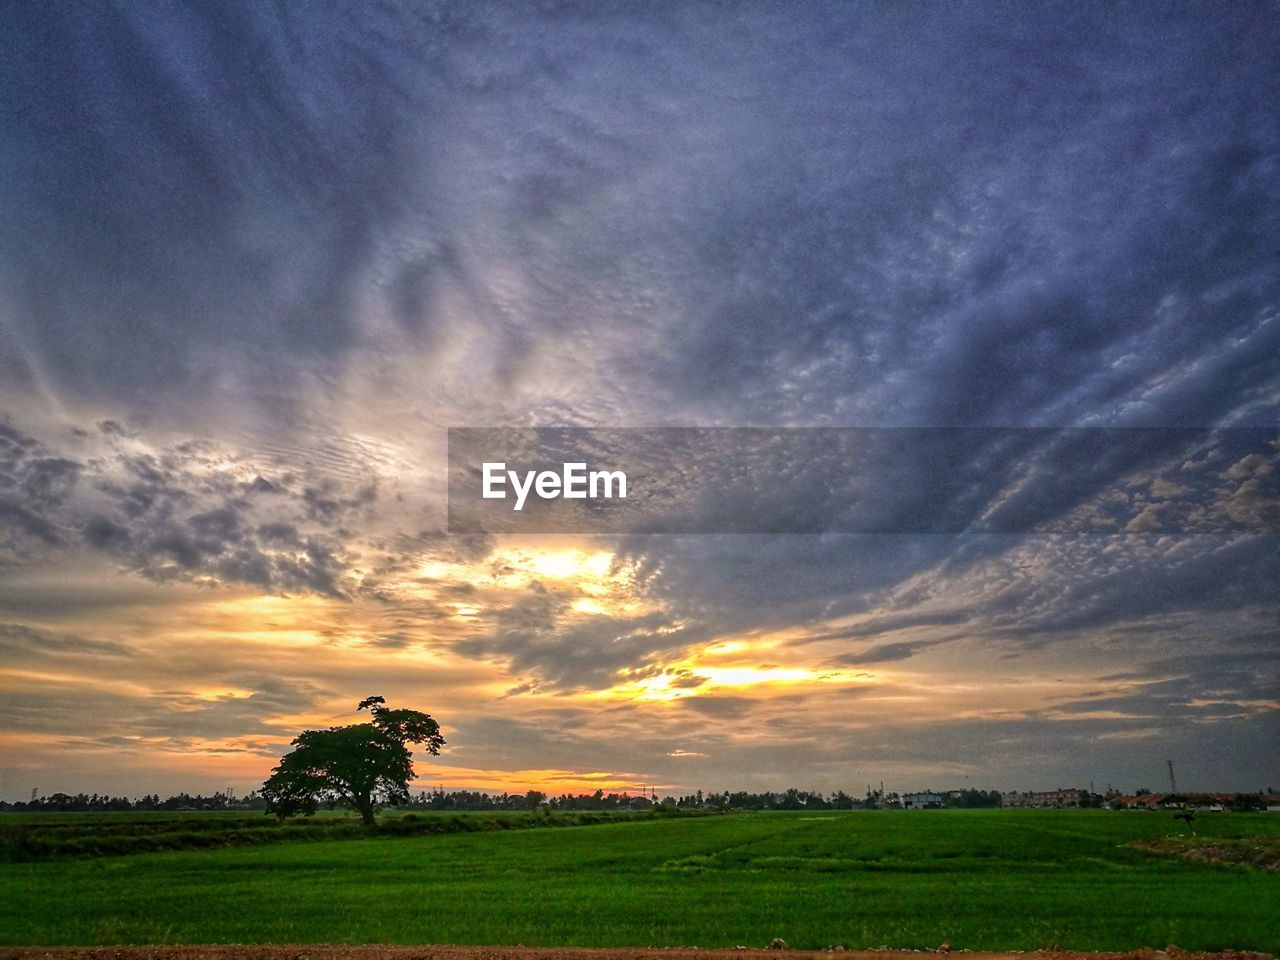 field, sunset, cloud - sky, sky, nature, farm, beauty in nature, landscape, agriculture, scenics, rural scene, tranquility, grass, tranquil scene, outdoors, real people, rice paddy, growth, men, tree, one person, day, people